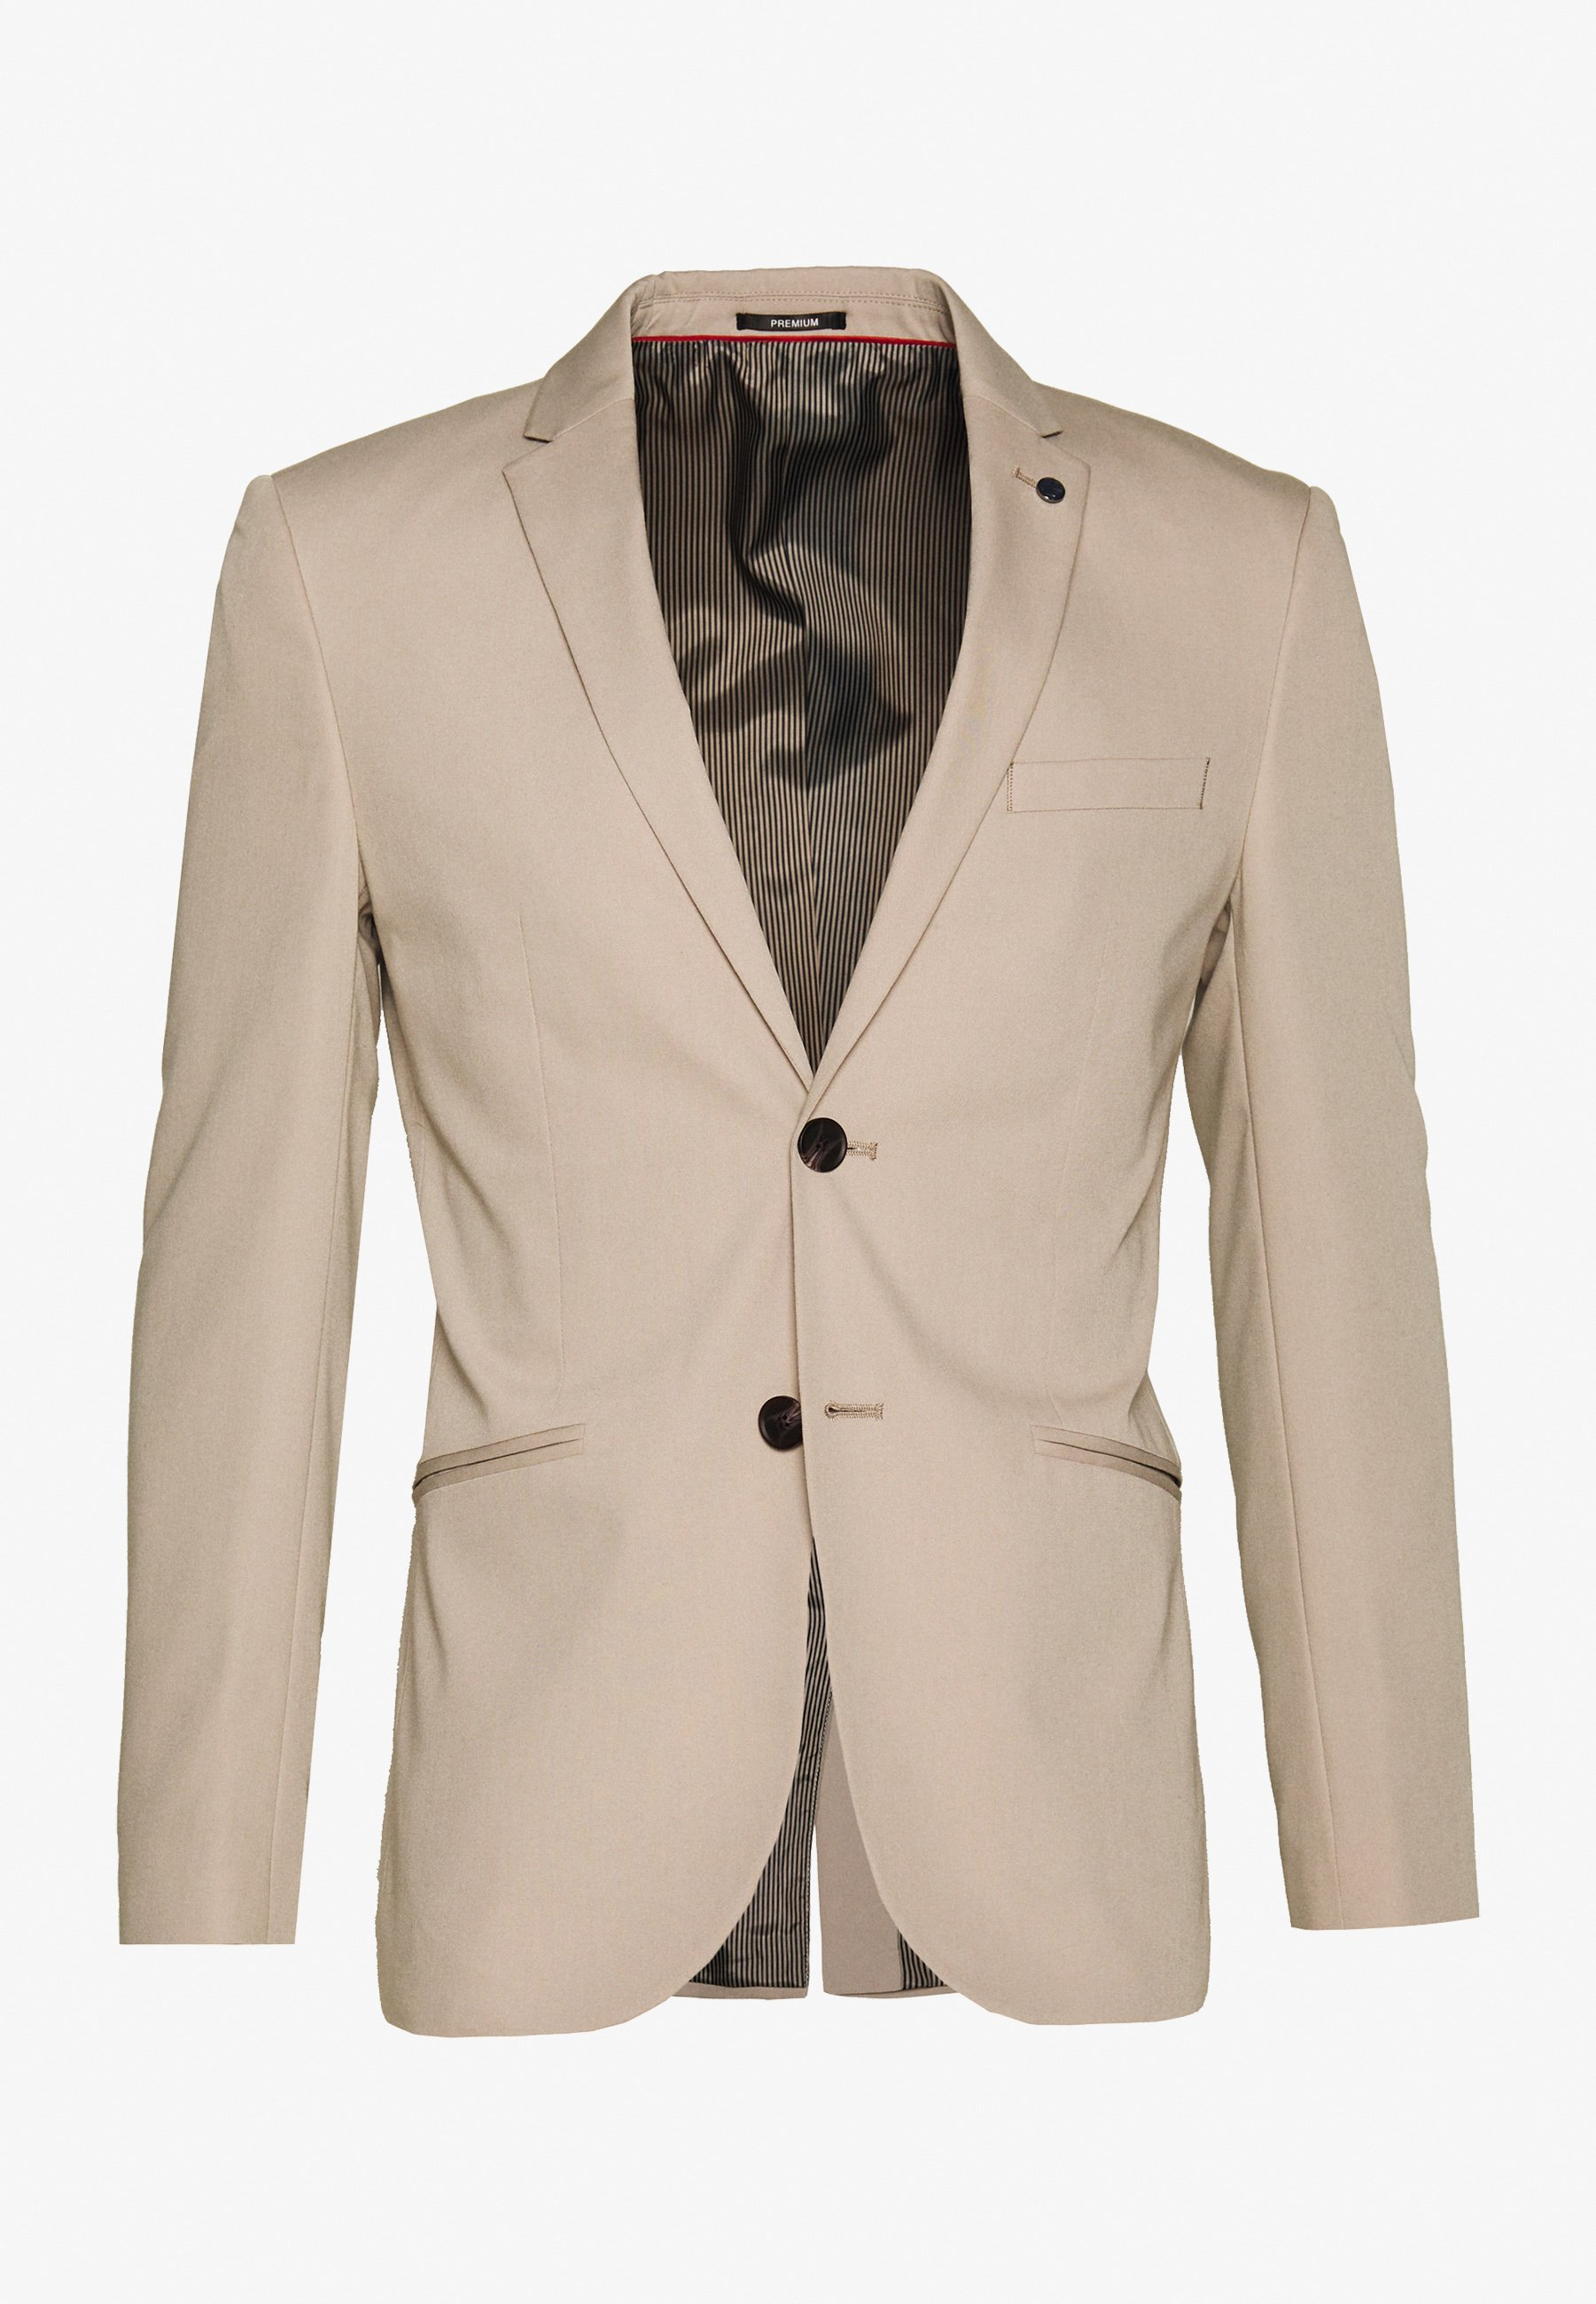 Jack & Jones Premium Blavincent Suit - String